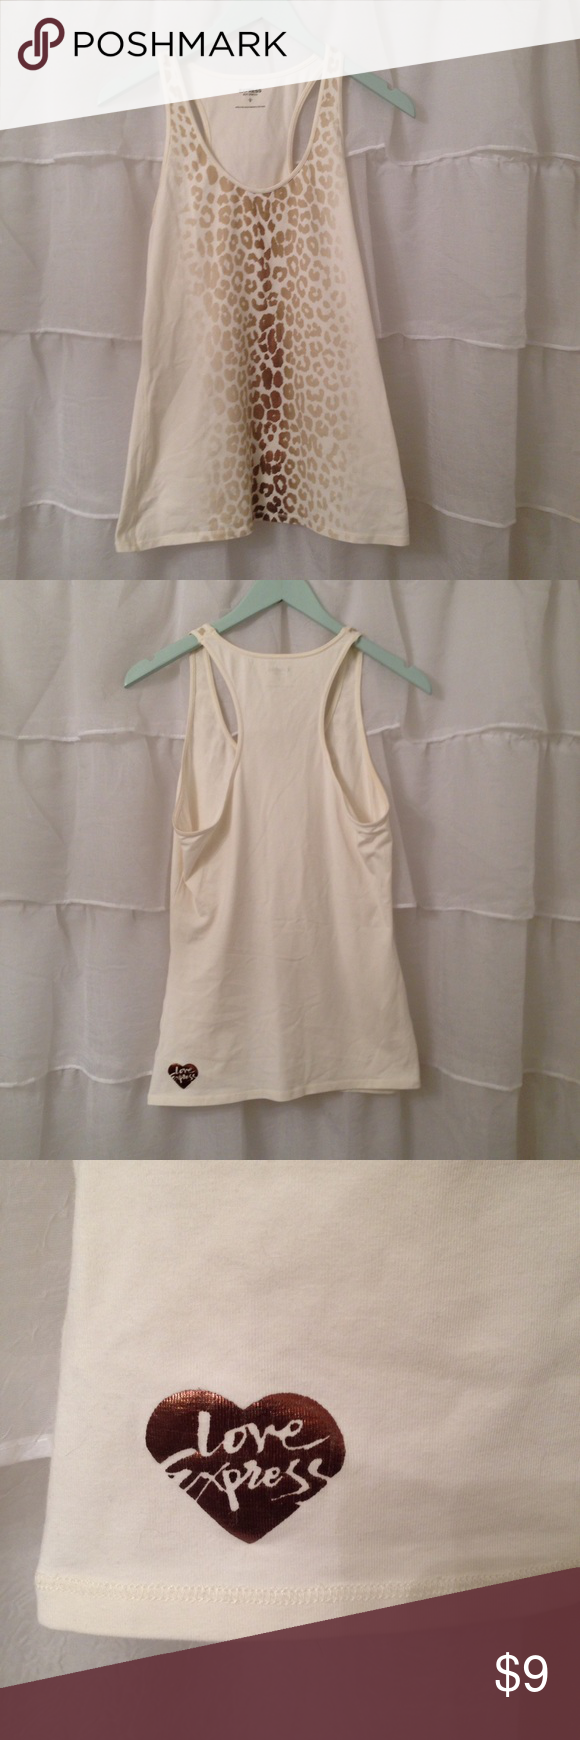 Express Animal Print Tank size Large This tank top is a cream color with gold animal print. It is a size large purchased from Express. Super comfortable!l and soft!! Express Tops Tank Tops